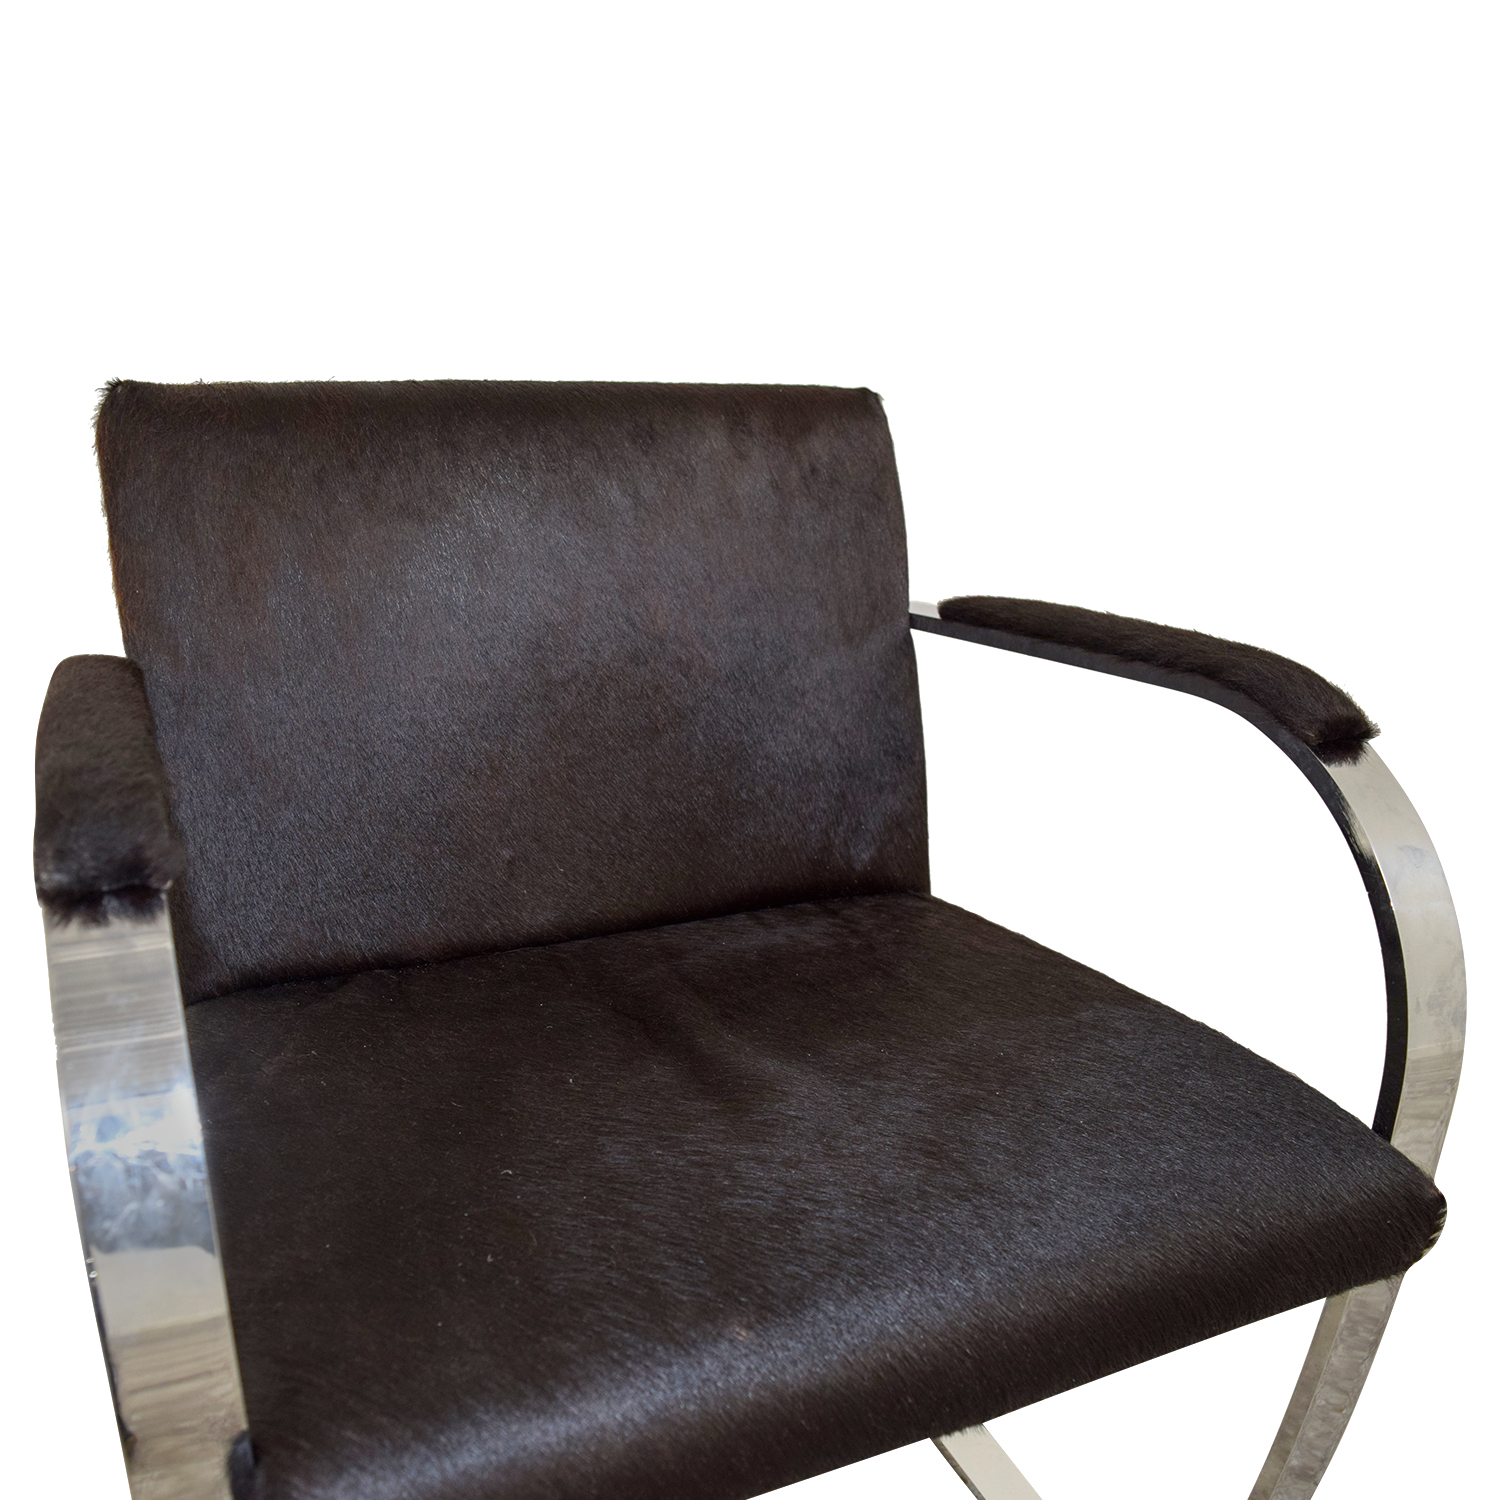 Soho Concept Furniture Soho Concept Furniture Black Pony Skin Accent Chair nyc